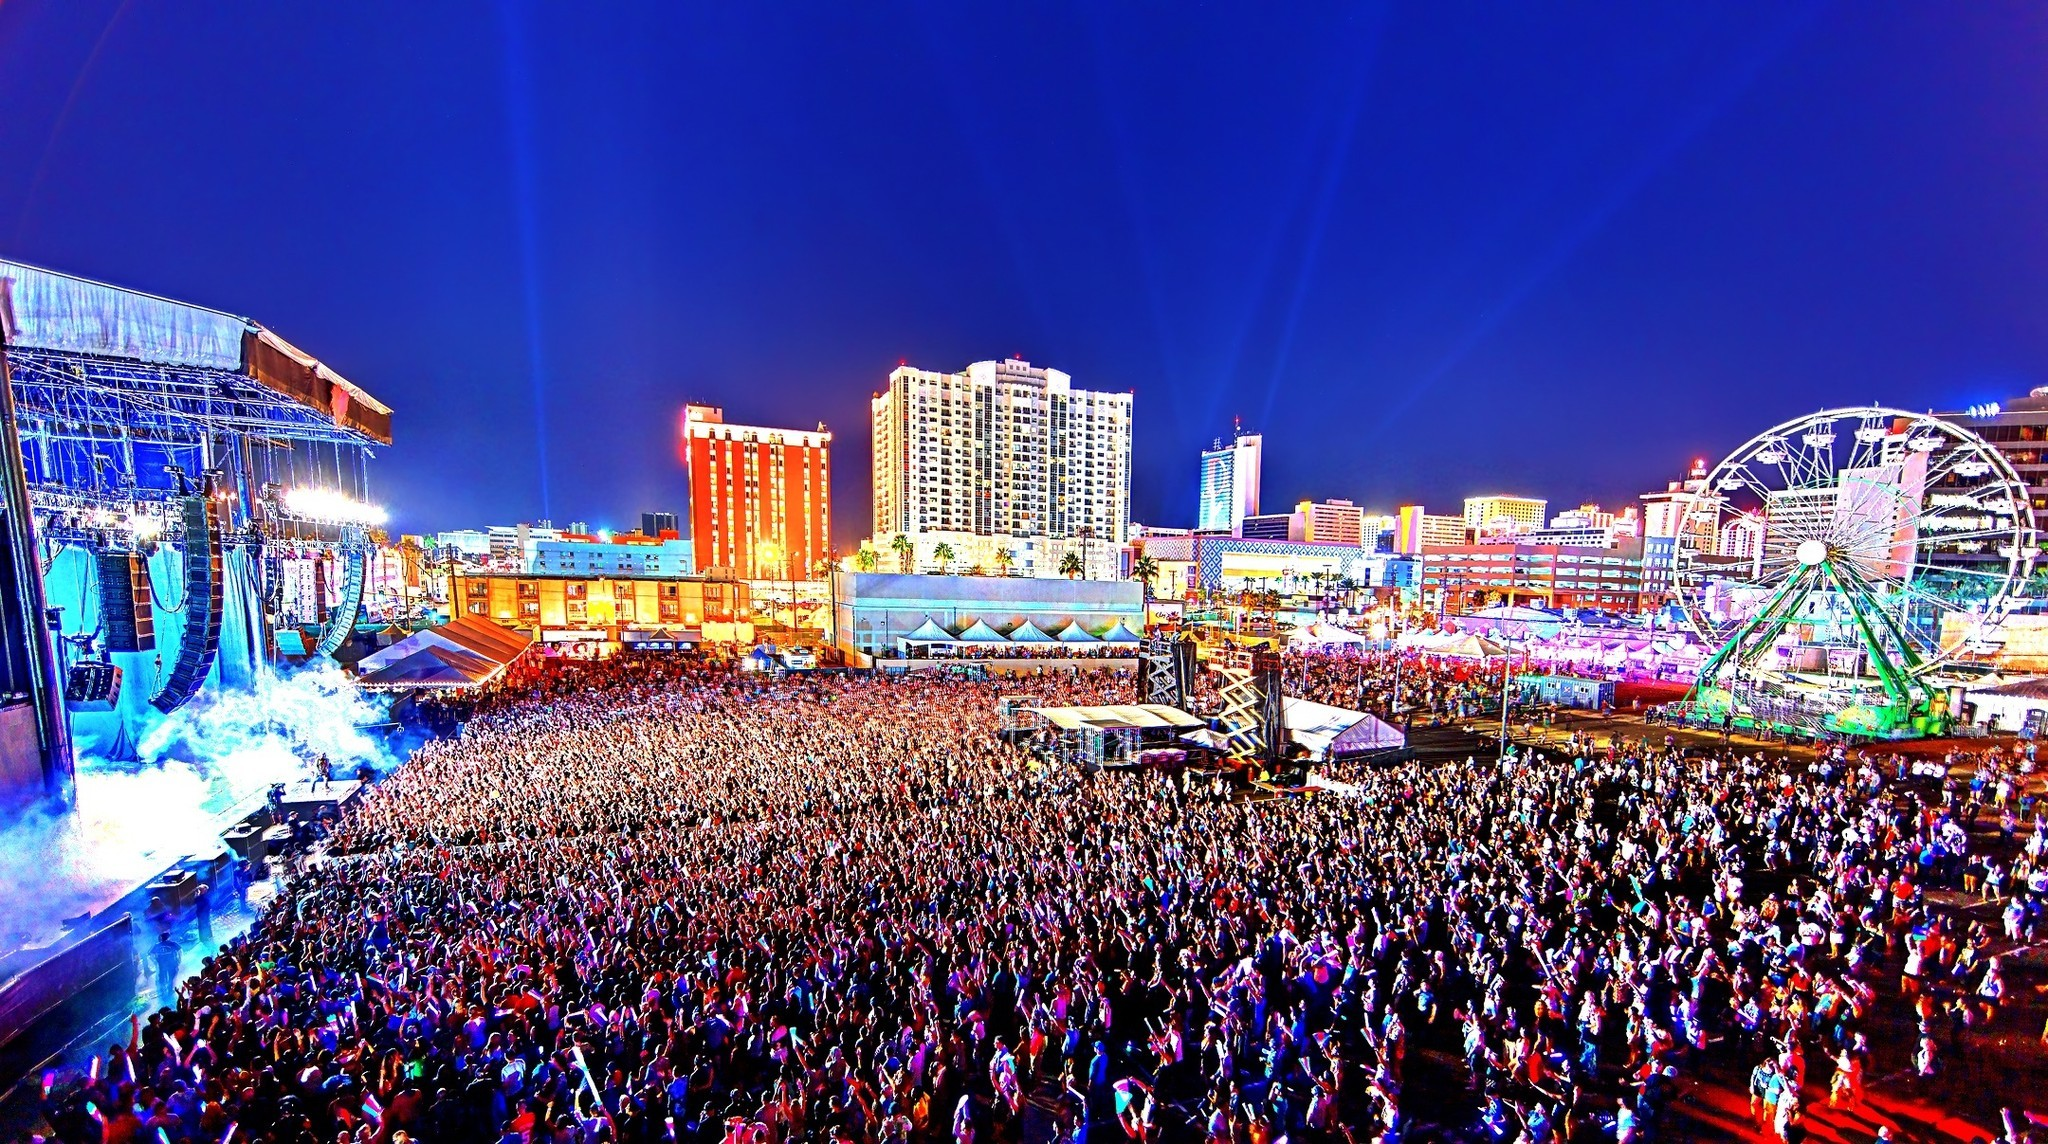 Win a Trip to Las Vegas and the Life is Beautiful Music Festival